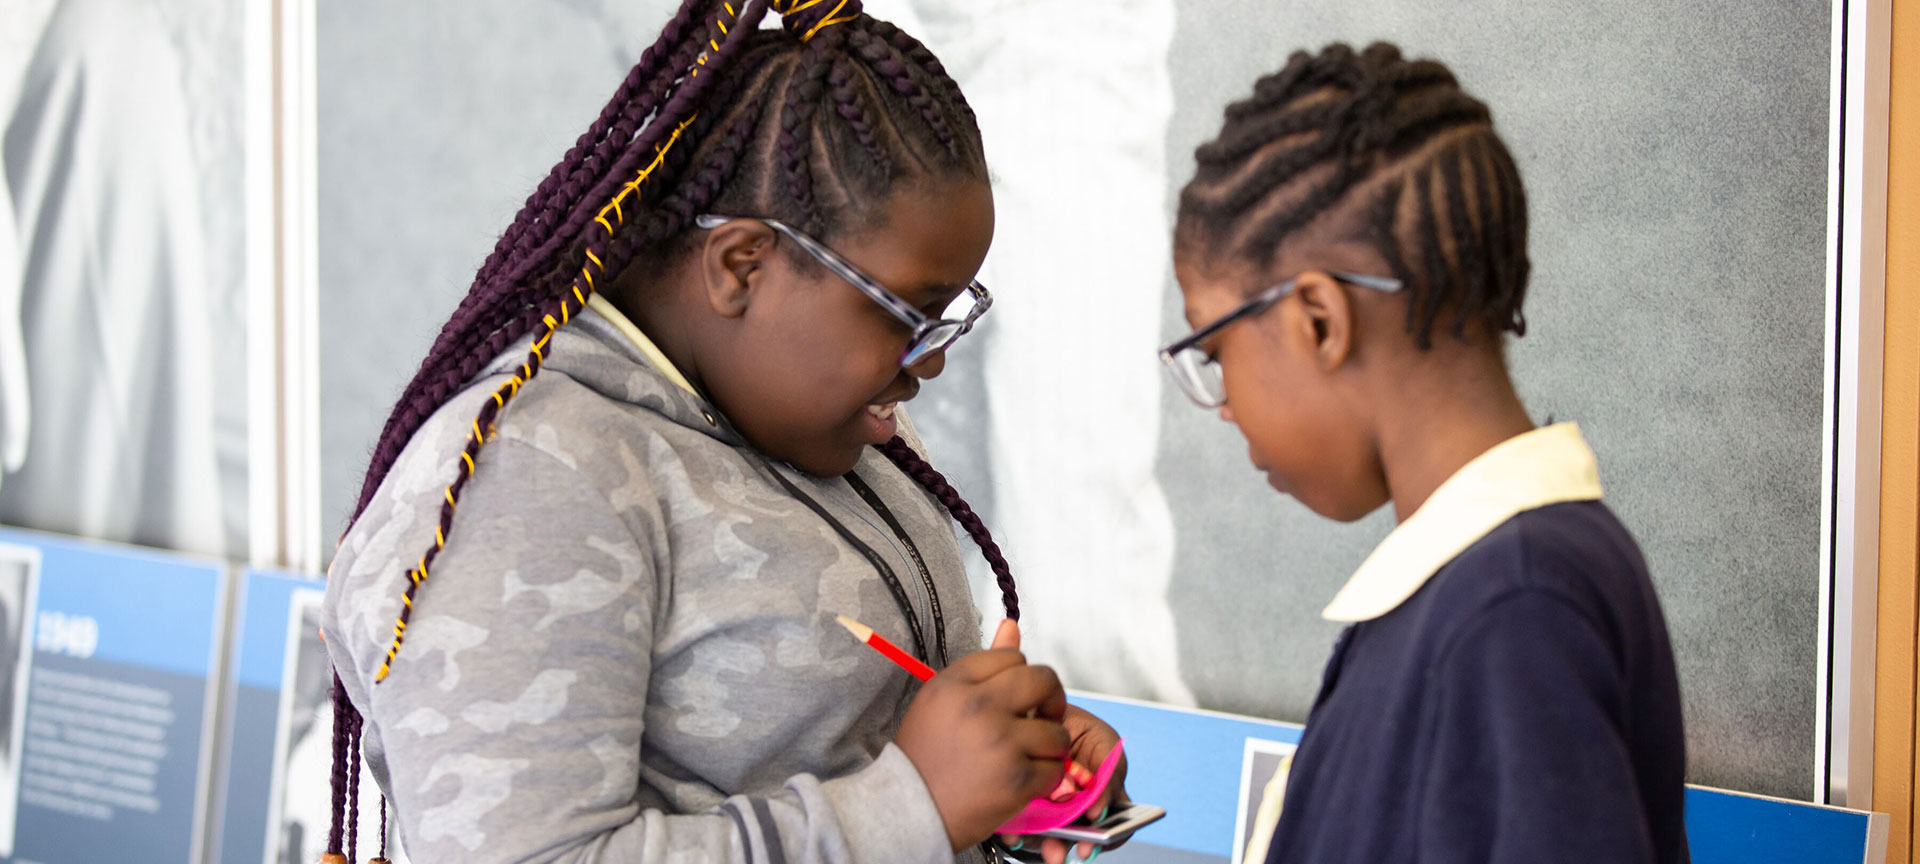 Two young female students participating in a writing activity